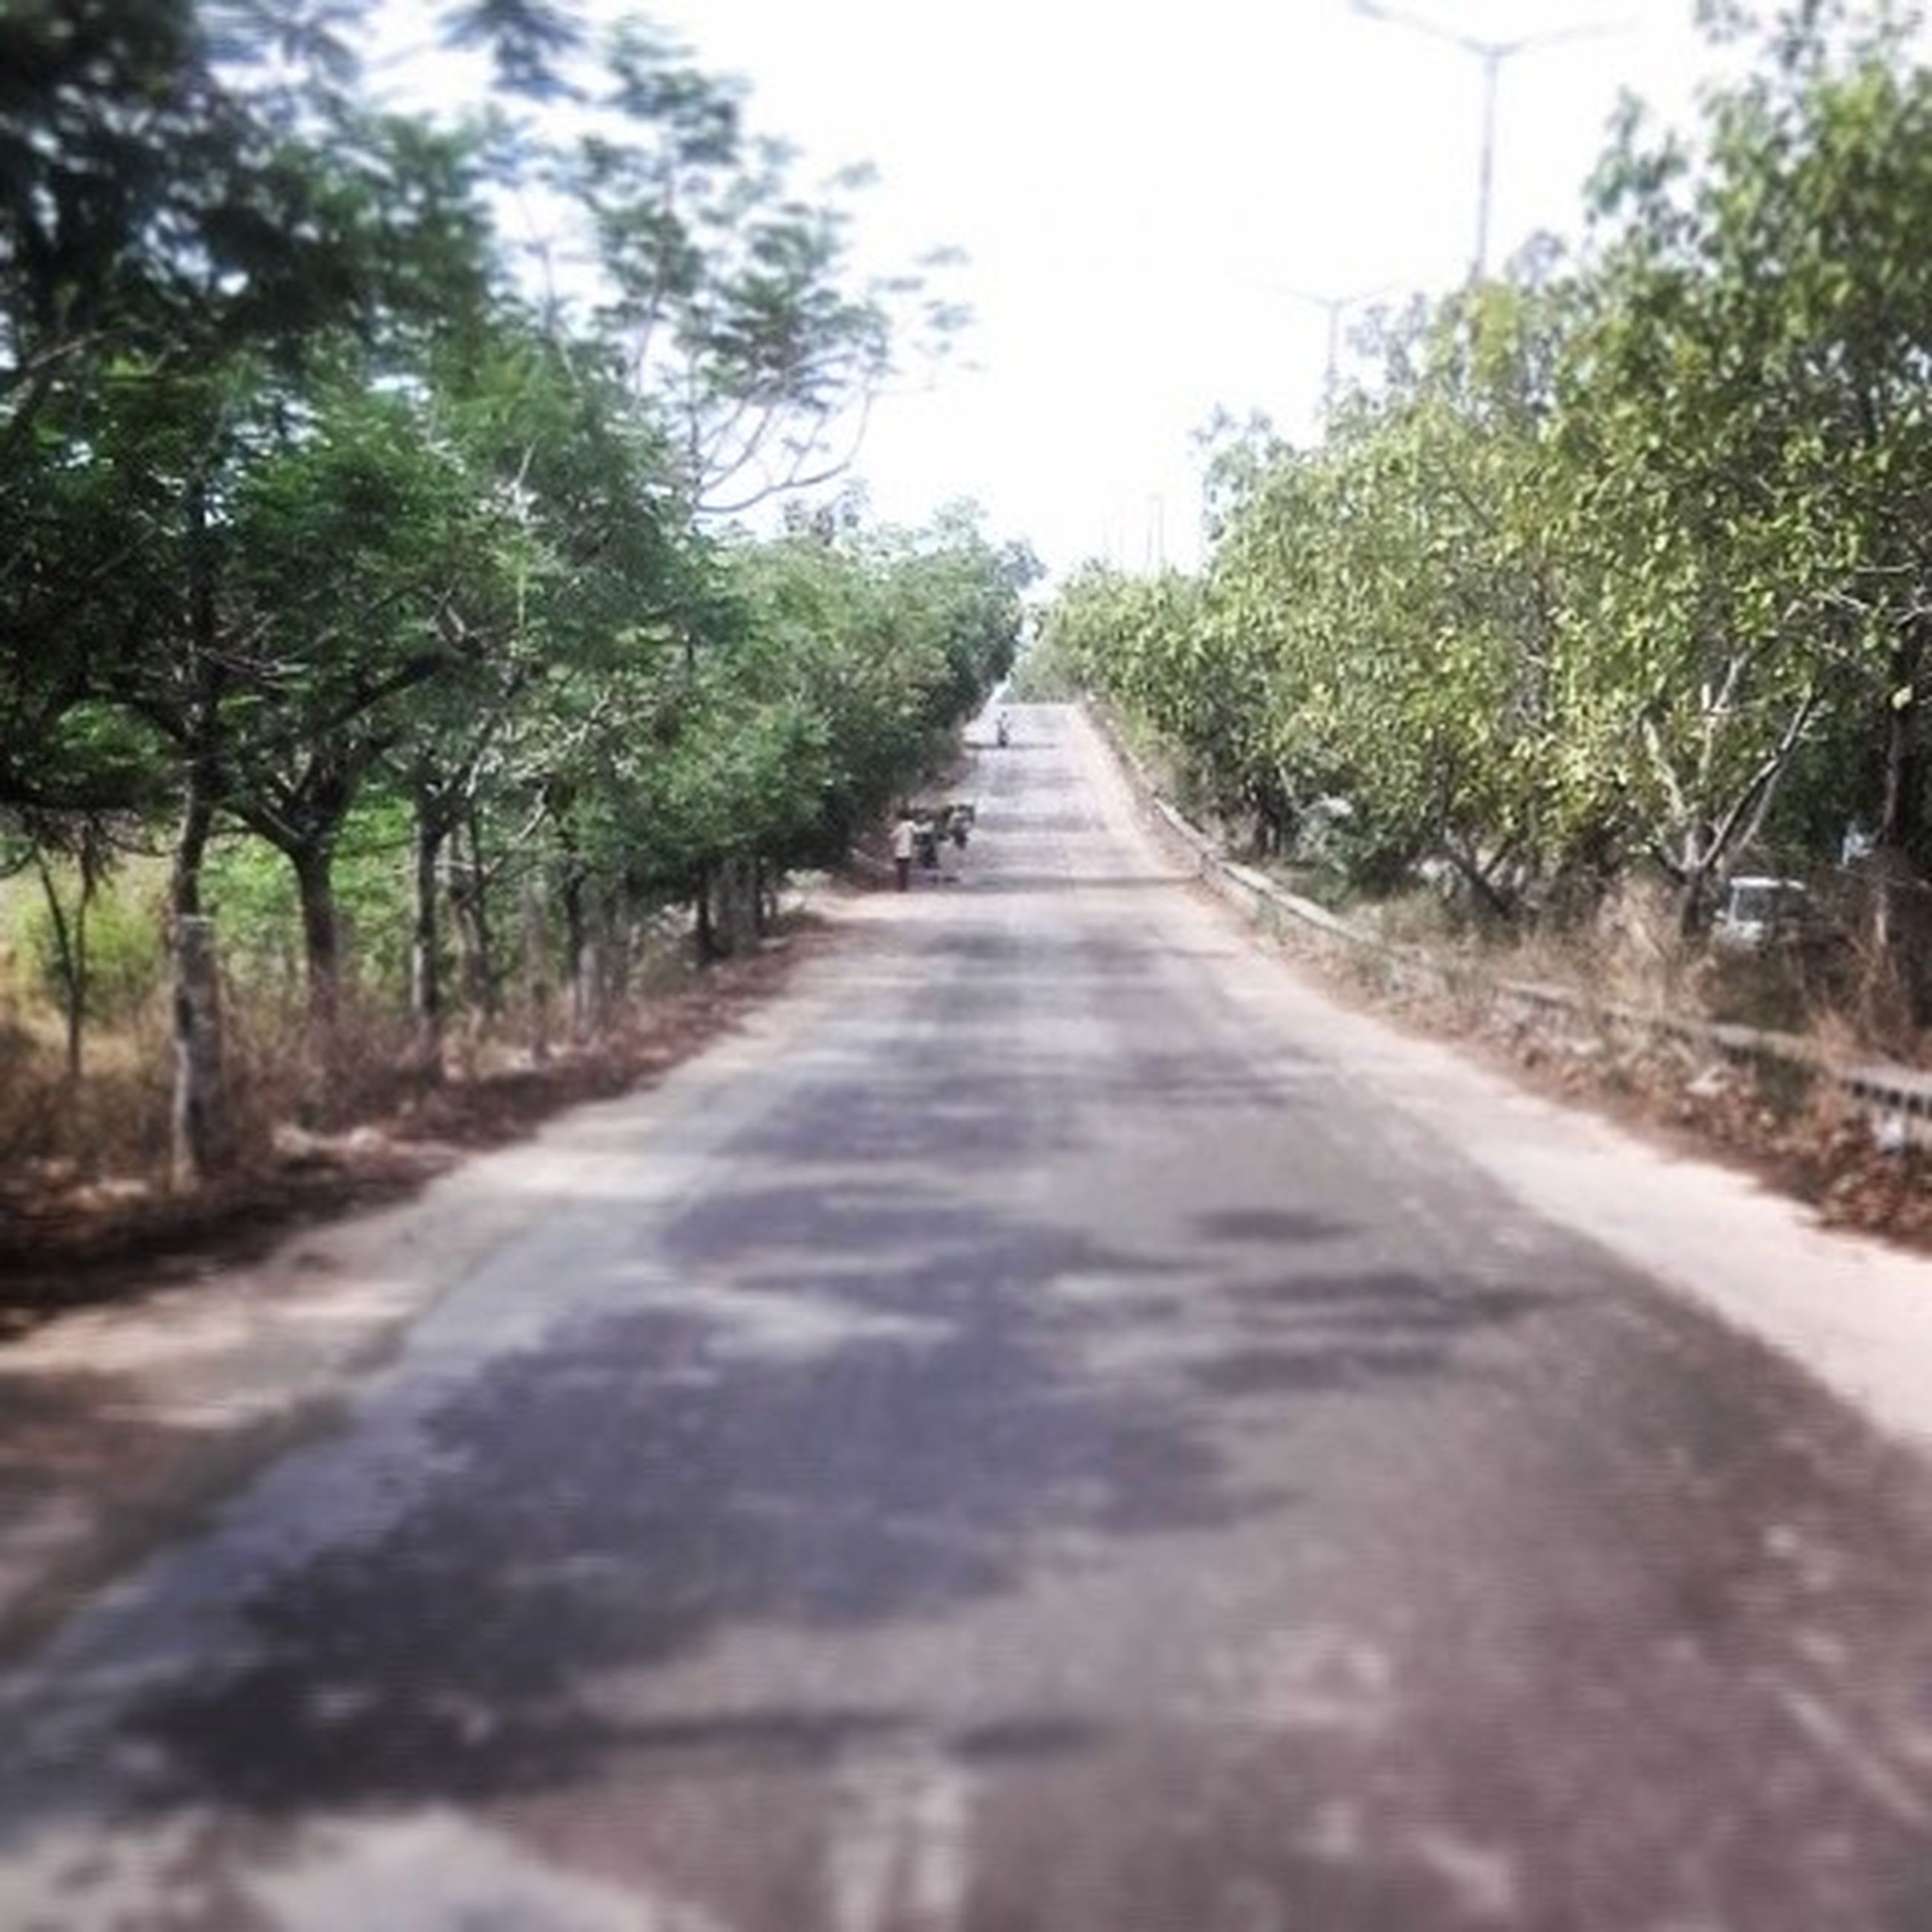 the way forward, diminishing perspective, tree, vanishing point, transportation, road, long, growth, tranquility, clear sky, surface level, nature, tranquil scene, empty road, day, outdoors, no people, green color, treelined, sky